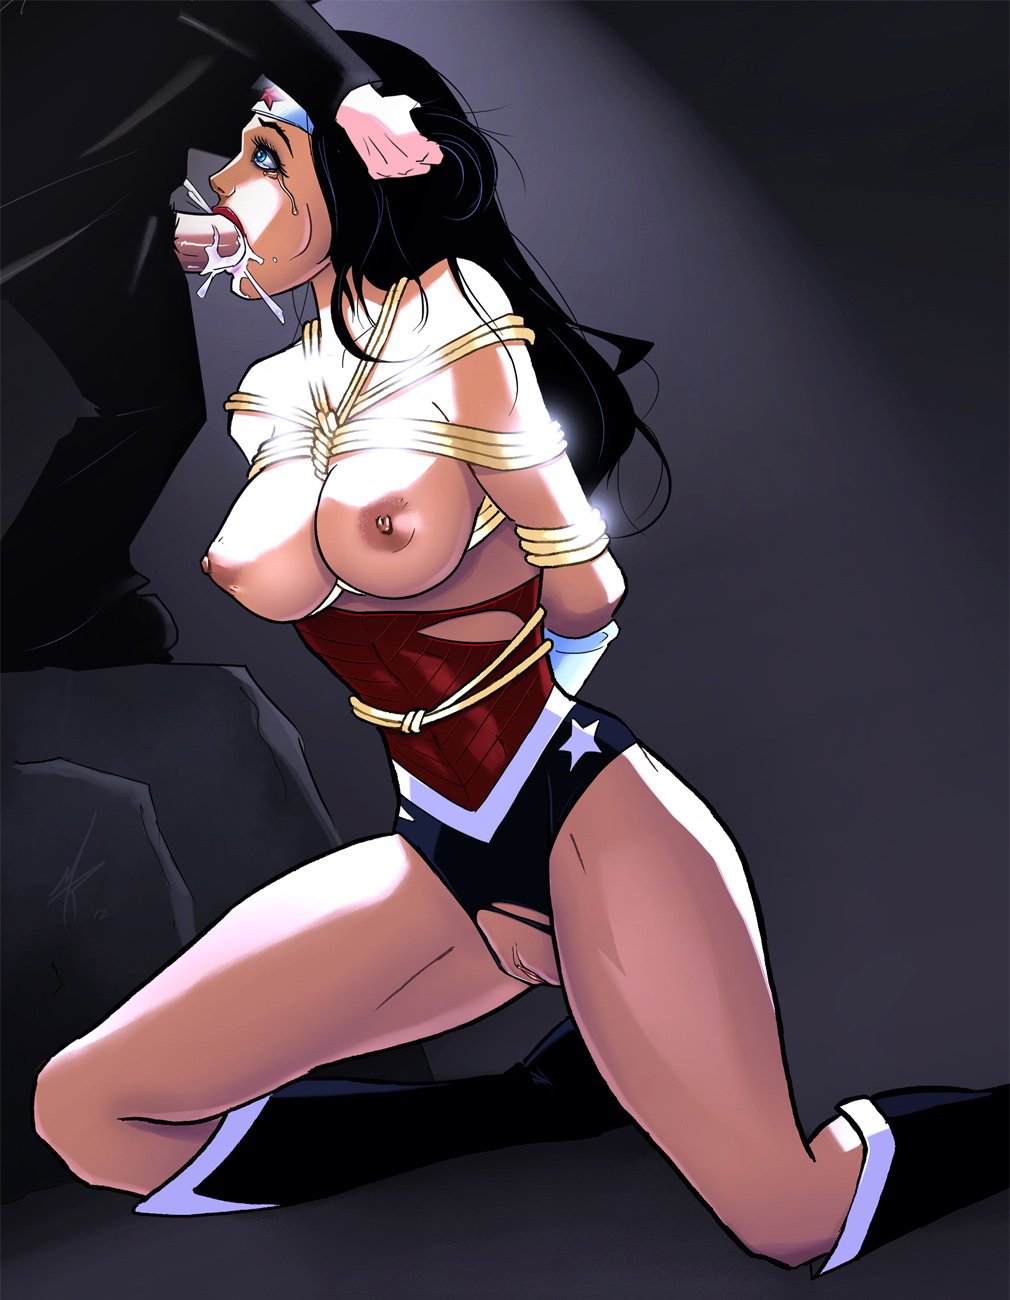 Wonder woman hentai porn pics naked picture